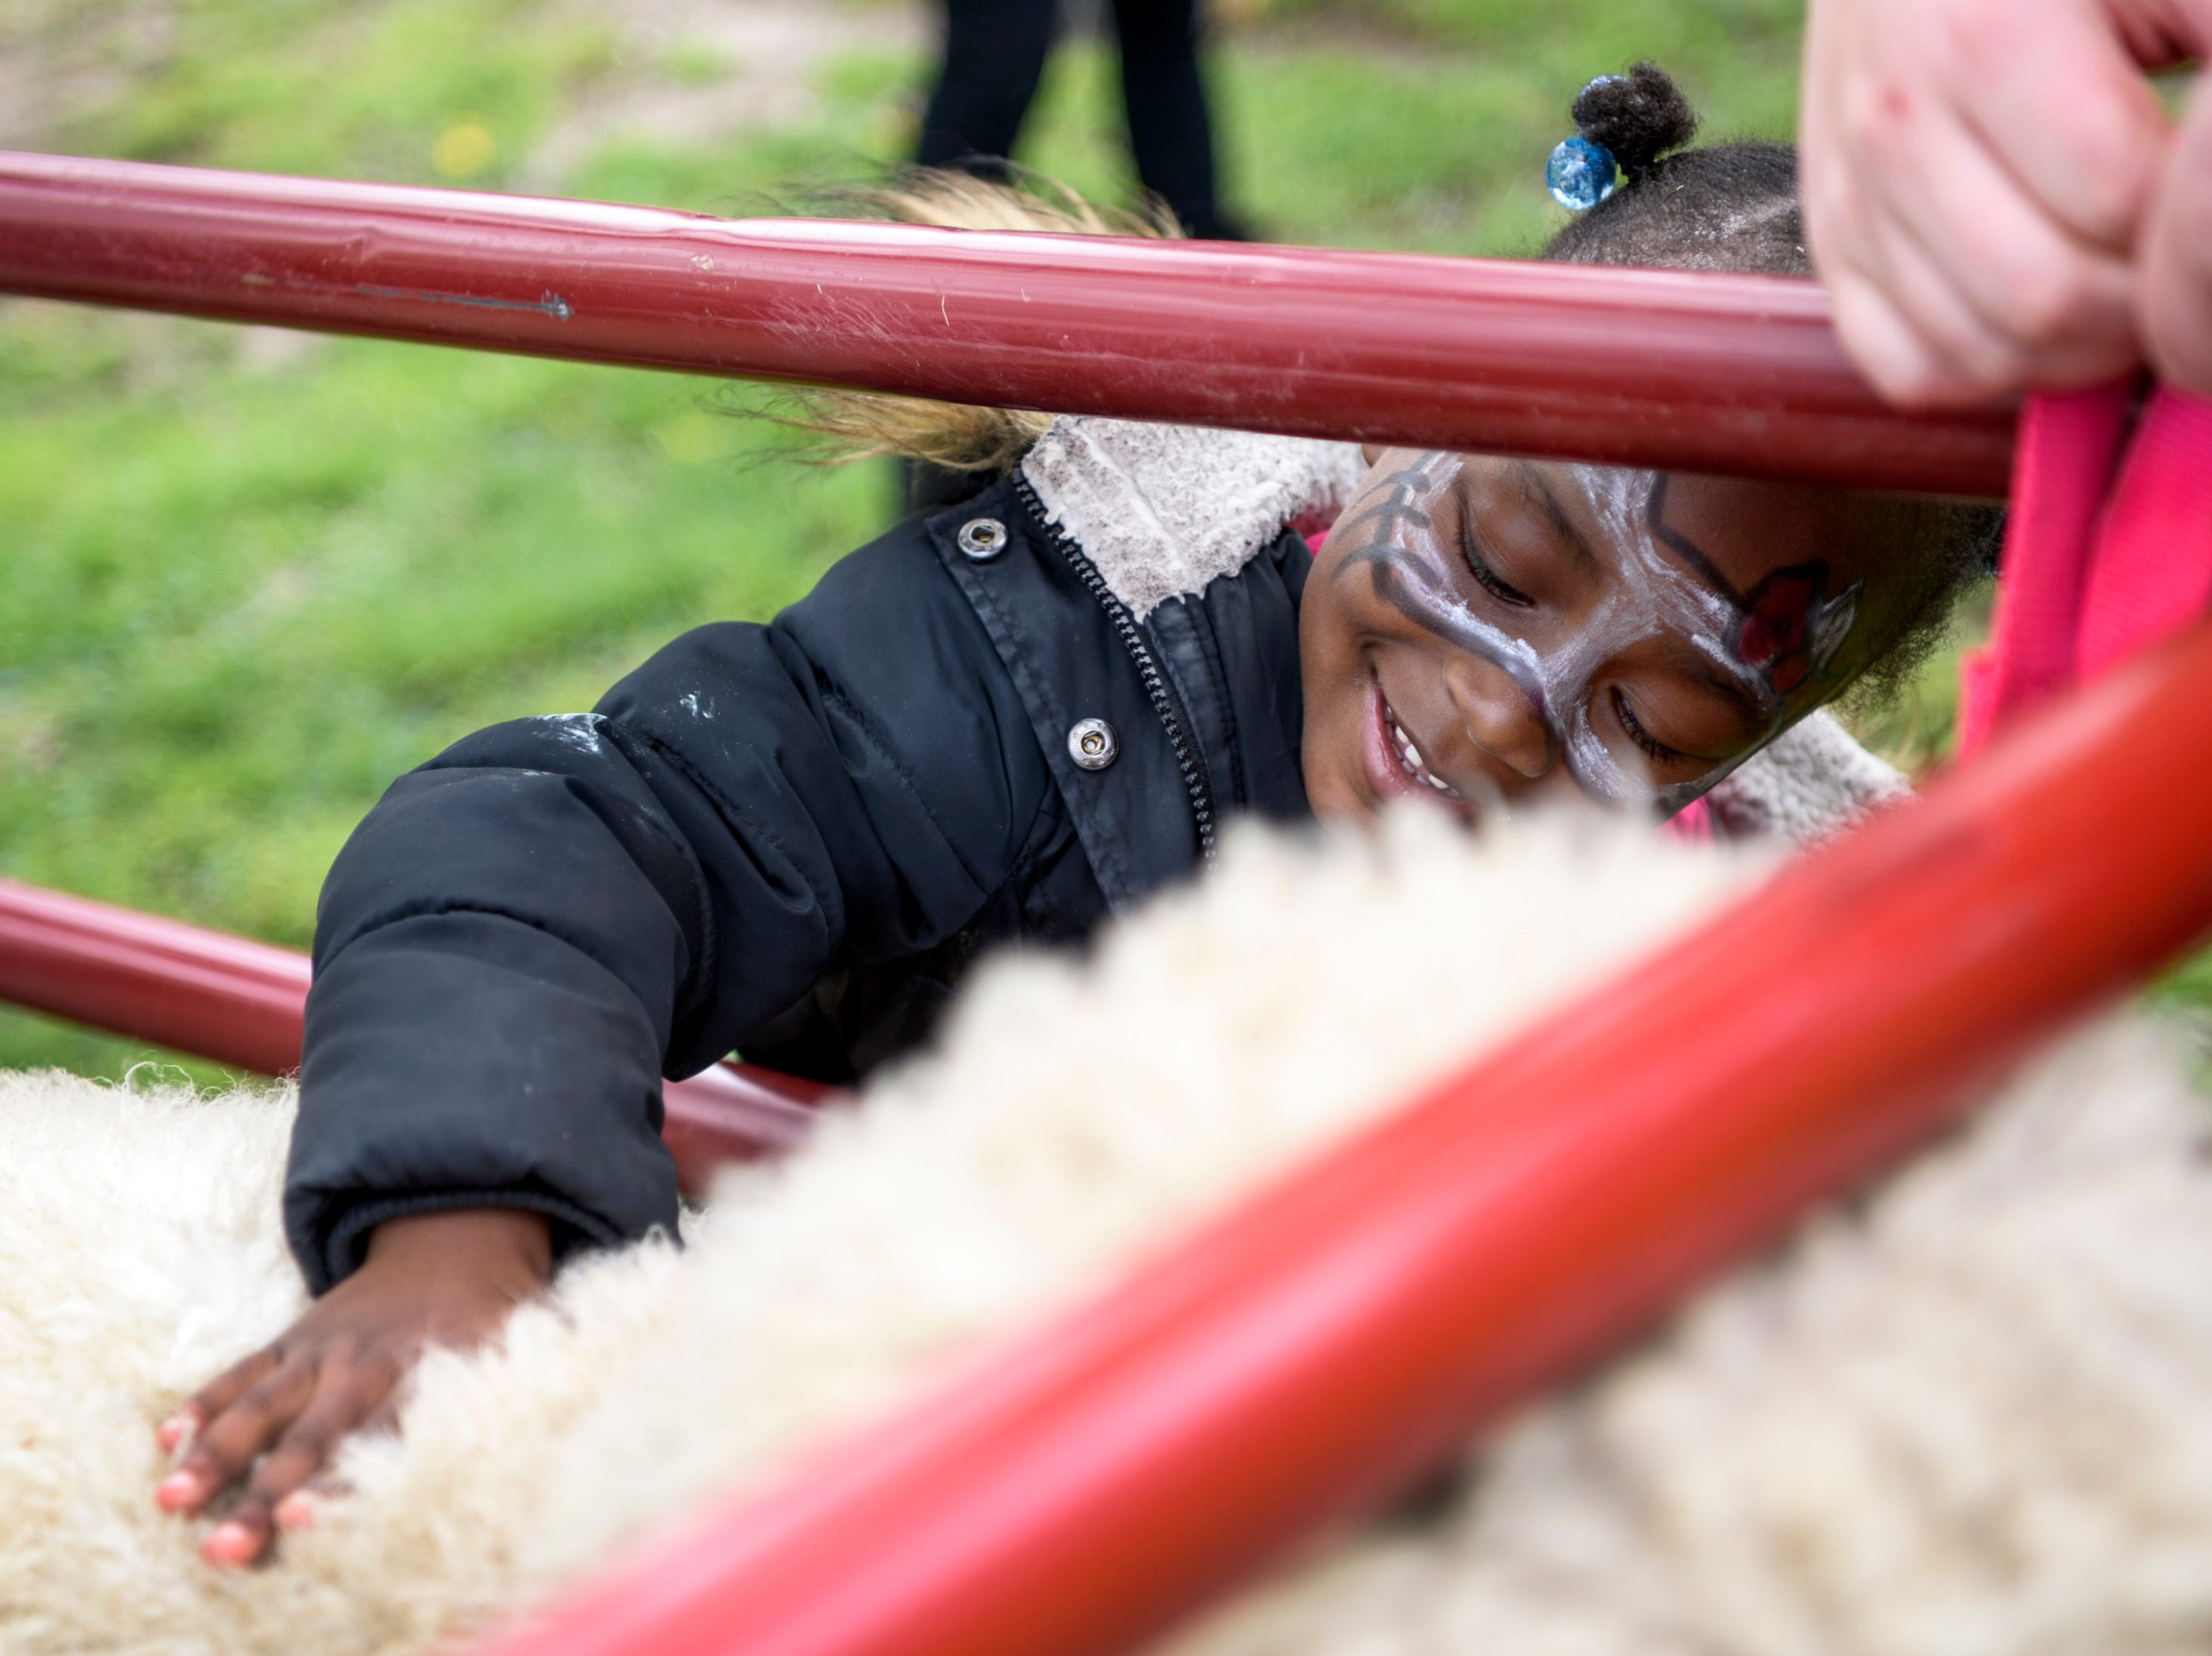 Amira Clemmons, 4, pets a sheep at the Lil' Rexing's Pony Express petting zoo booth during the Community Action Program of Evansville & Vanderburgh County's (CAPE) annual end of the year Family Fun Day at Wesselman Park in Evansville, Ind., Friday, April 12, 2019.